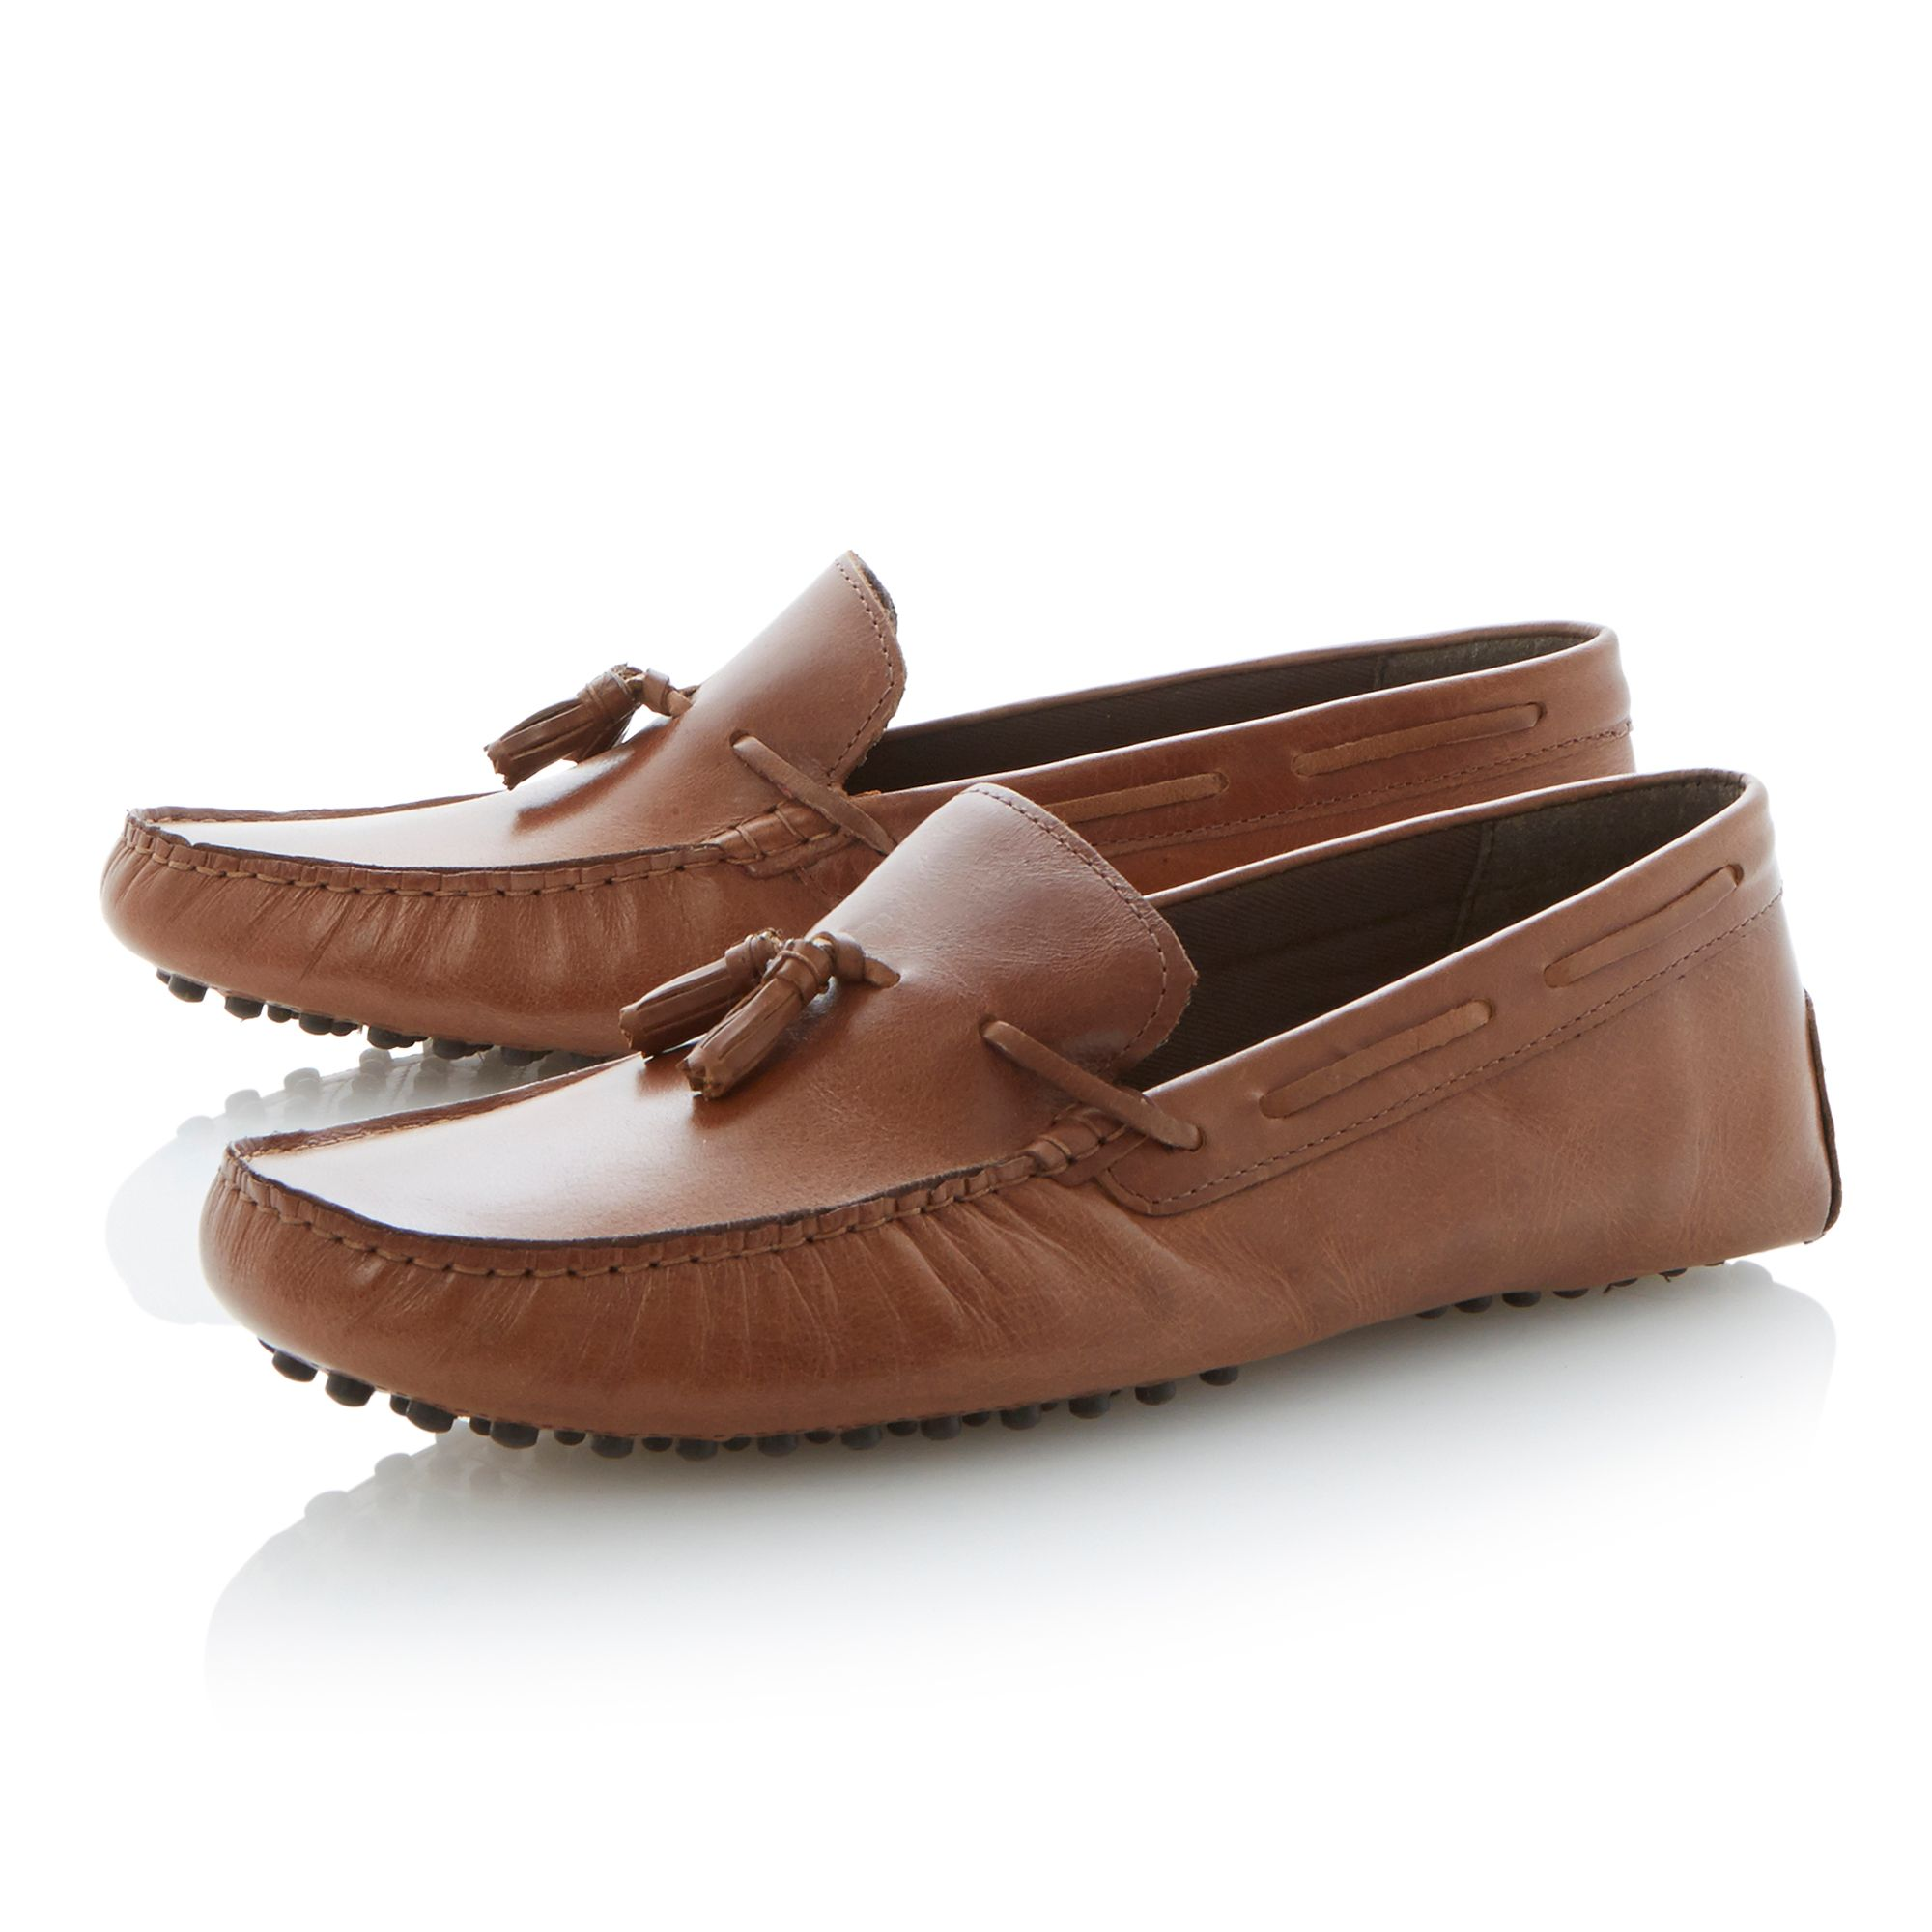 Barlow lace up tassel moccasin loafers